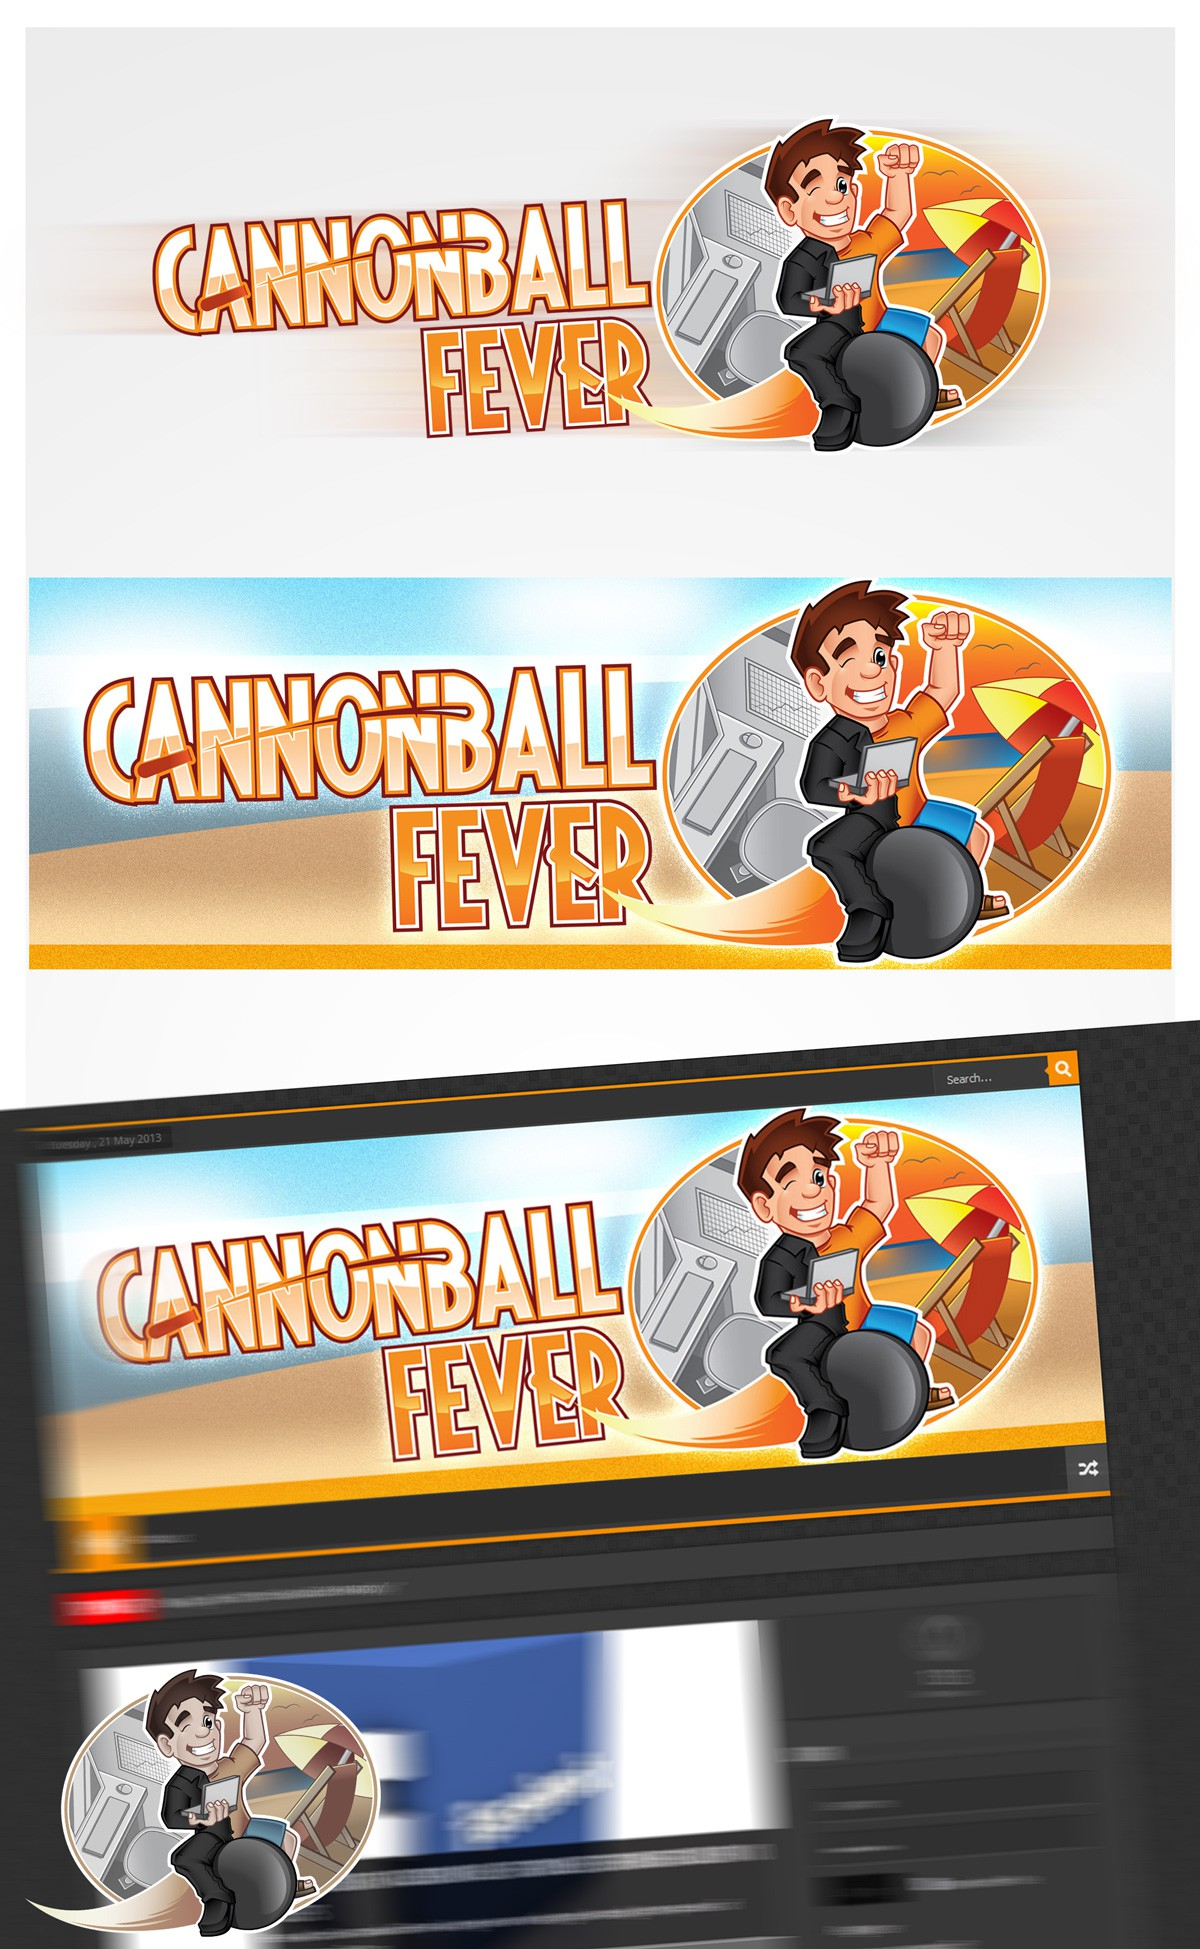 Cannonball Fever needs a new logo